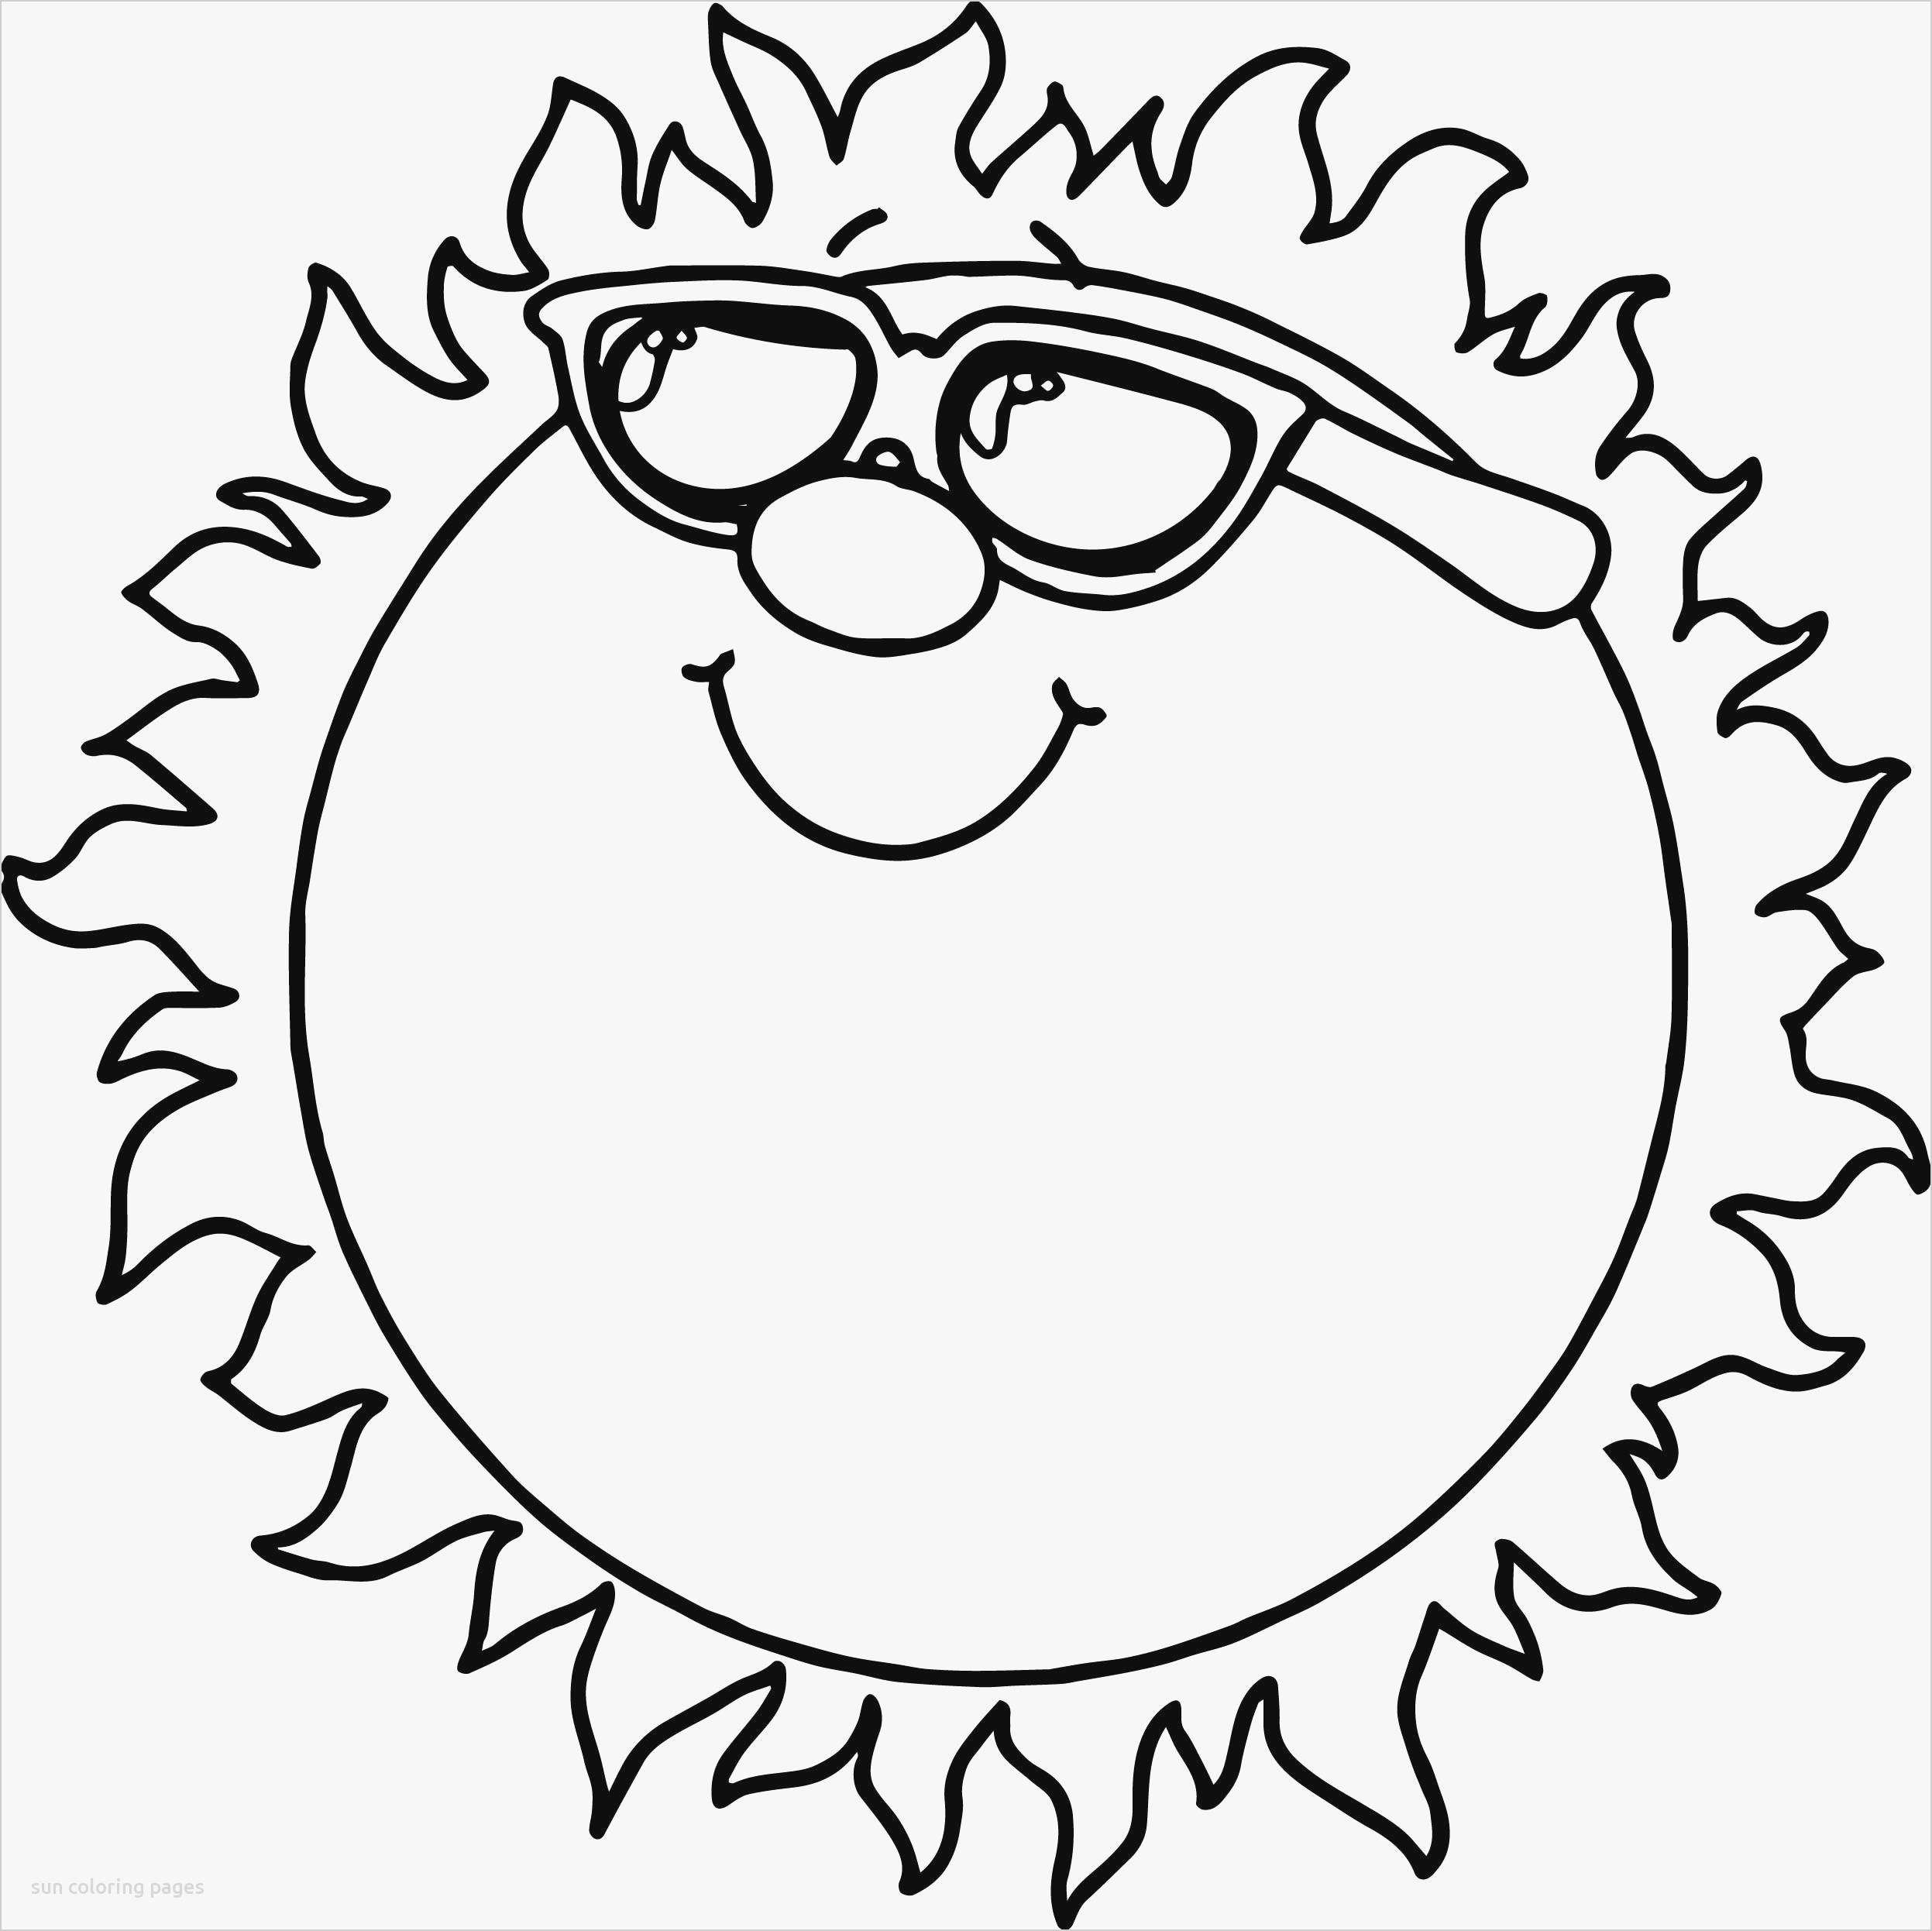 preschoolers coloring pages Collection-Download Coloring Pages For Kids 16-i